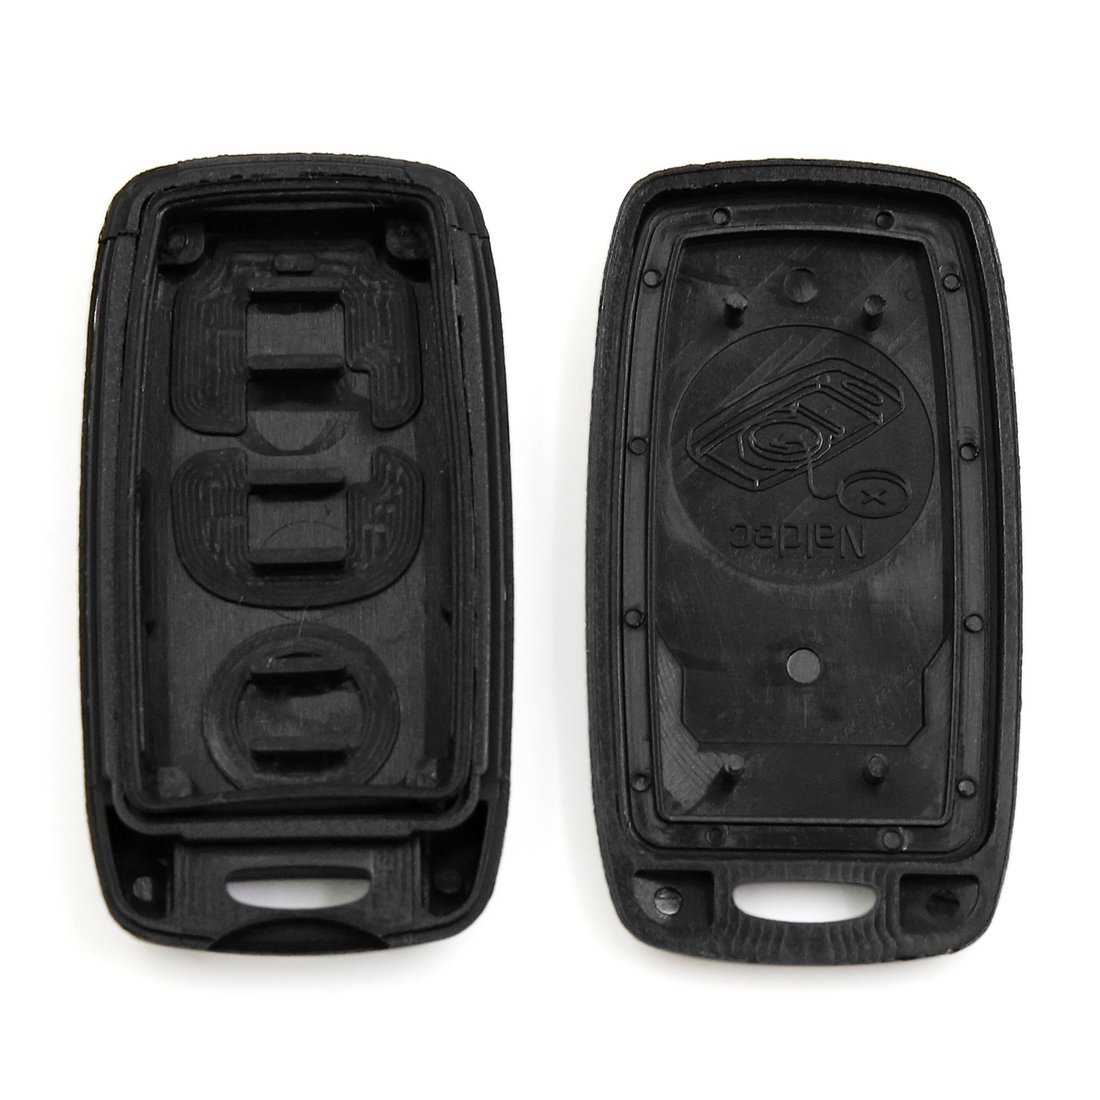 uxcell/® 2pcs 3 Buttons Key Fob Remote Control Case Shell Replacement KPU41794 for Mazda 3 6 Protege